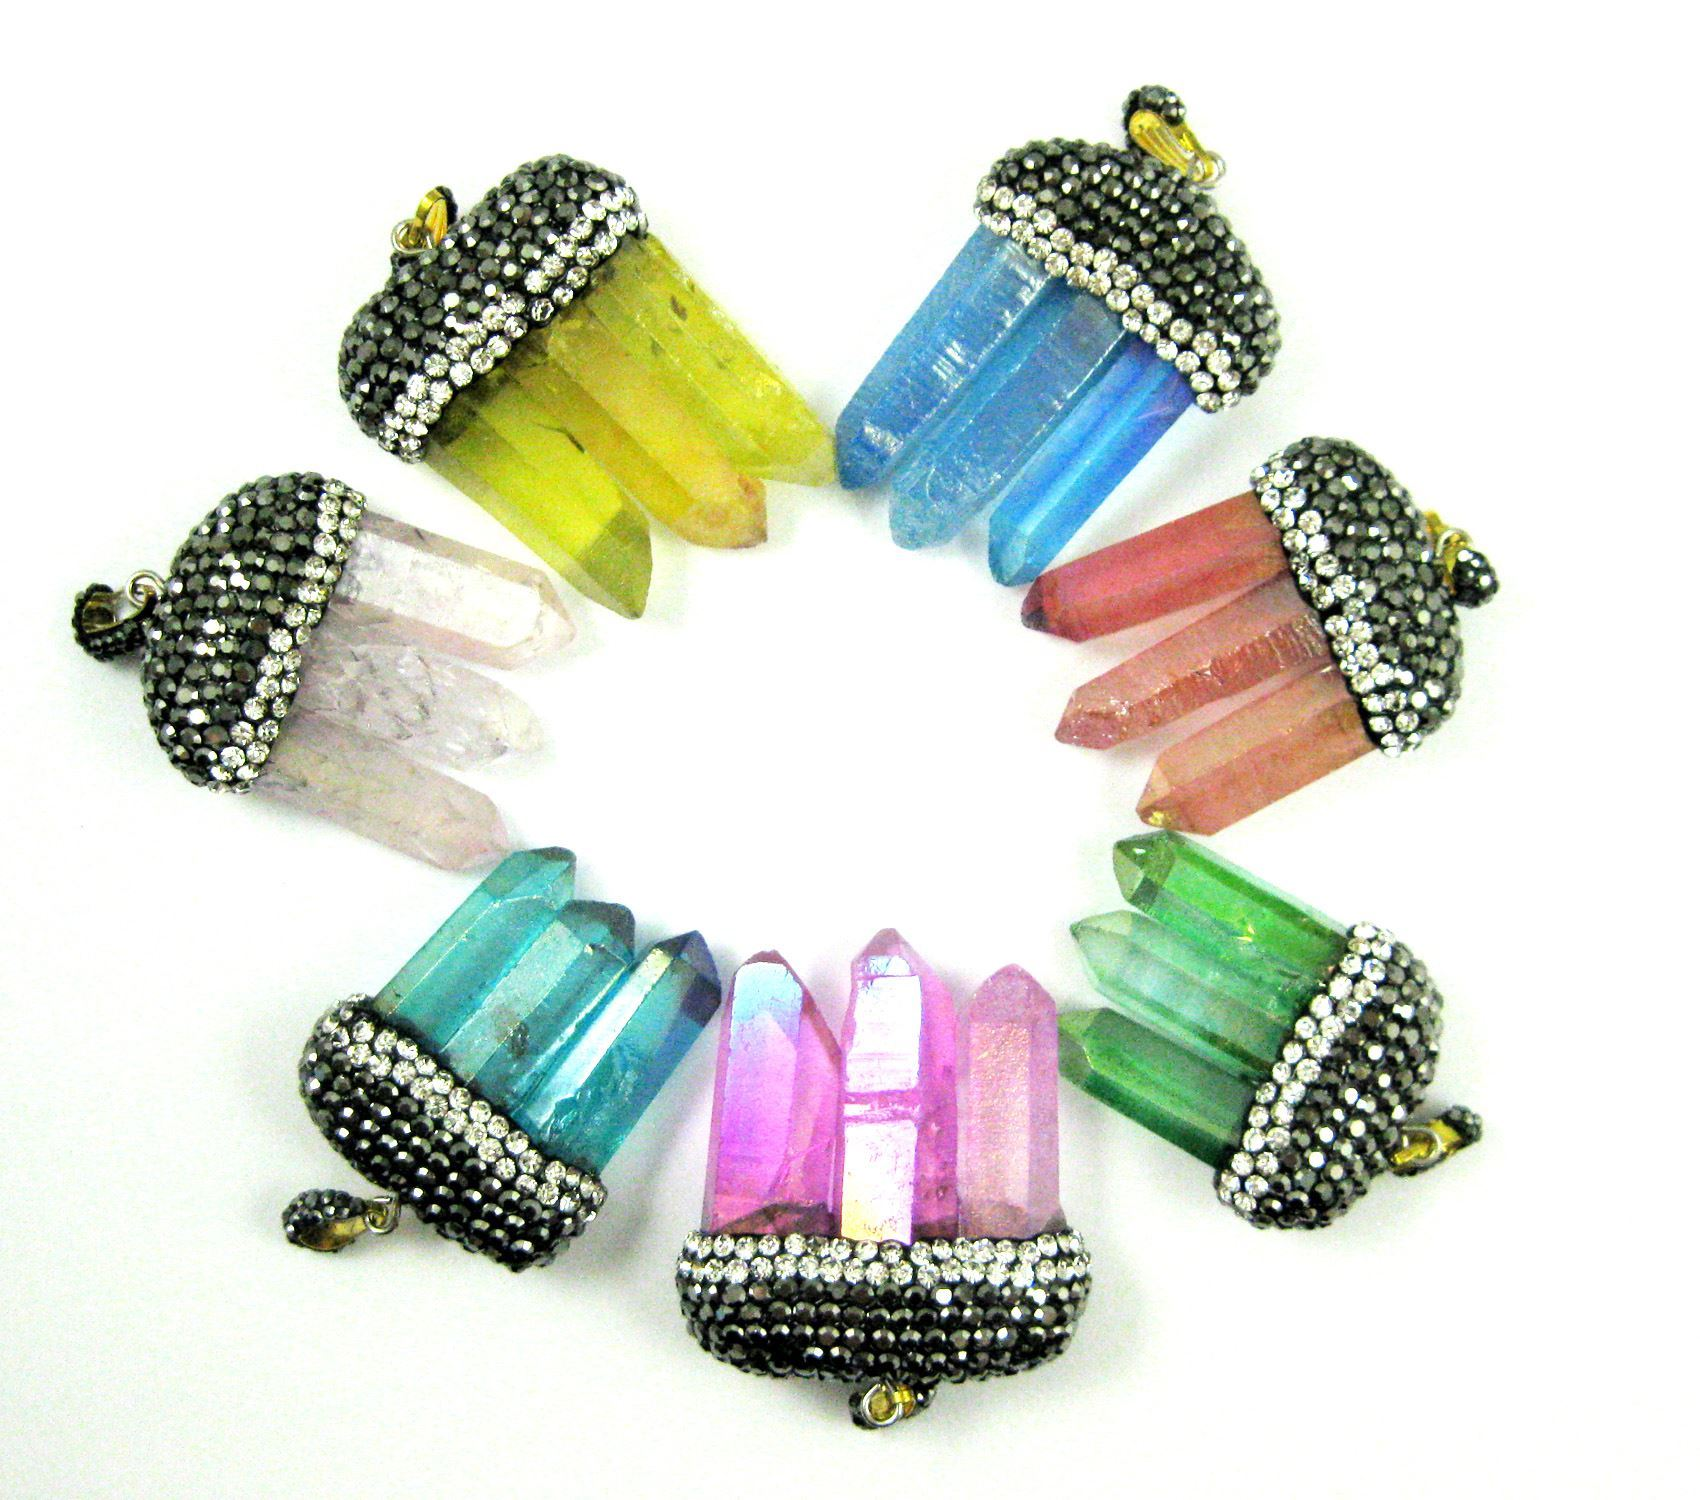 Natural Aura Quartz Tri Crystal Pave Pendant - Tri Pendulum Spike Pendant - Hot Pink Crystal- 45mm